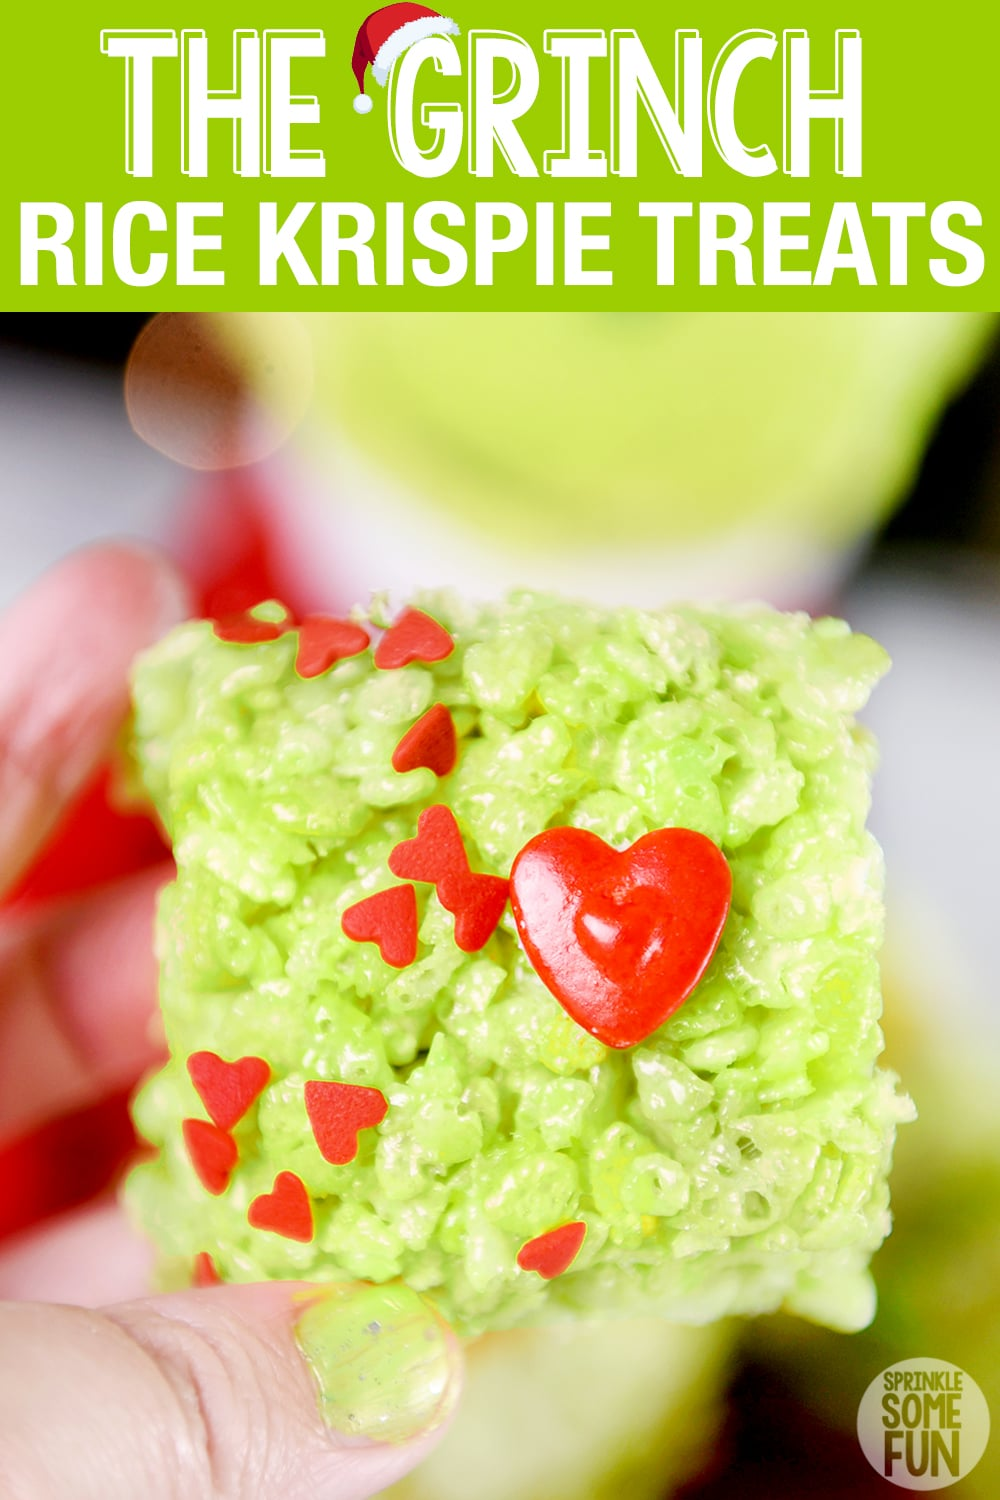 Grinch Rice Krispie Treats ⋆ Easy Grinch Dessert ⋆ Sprinkle Some Fun